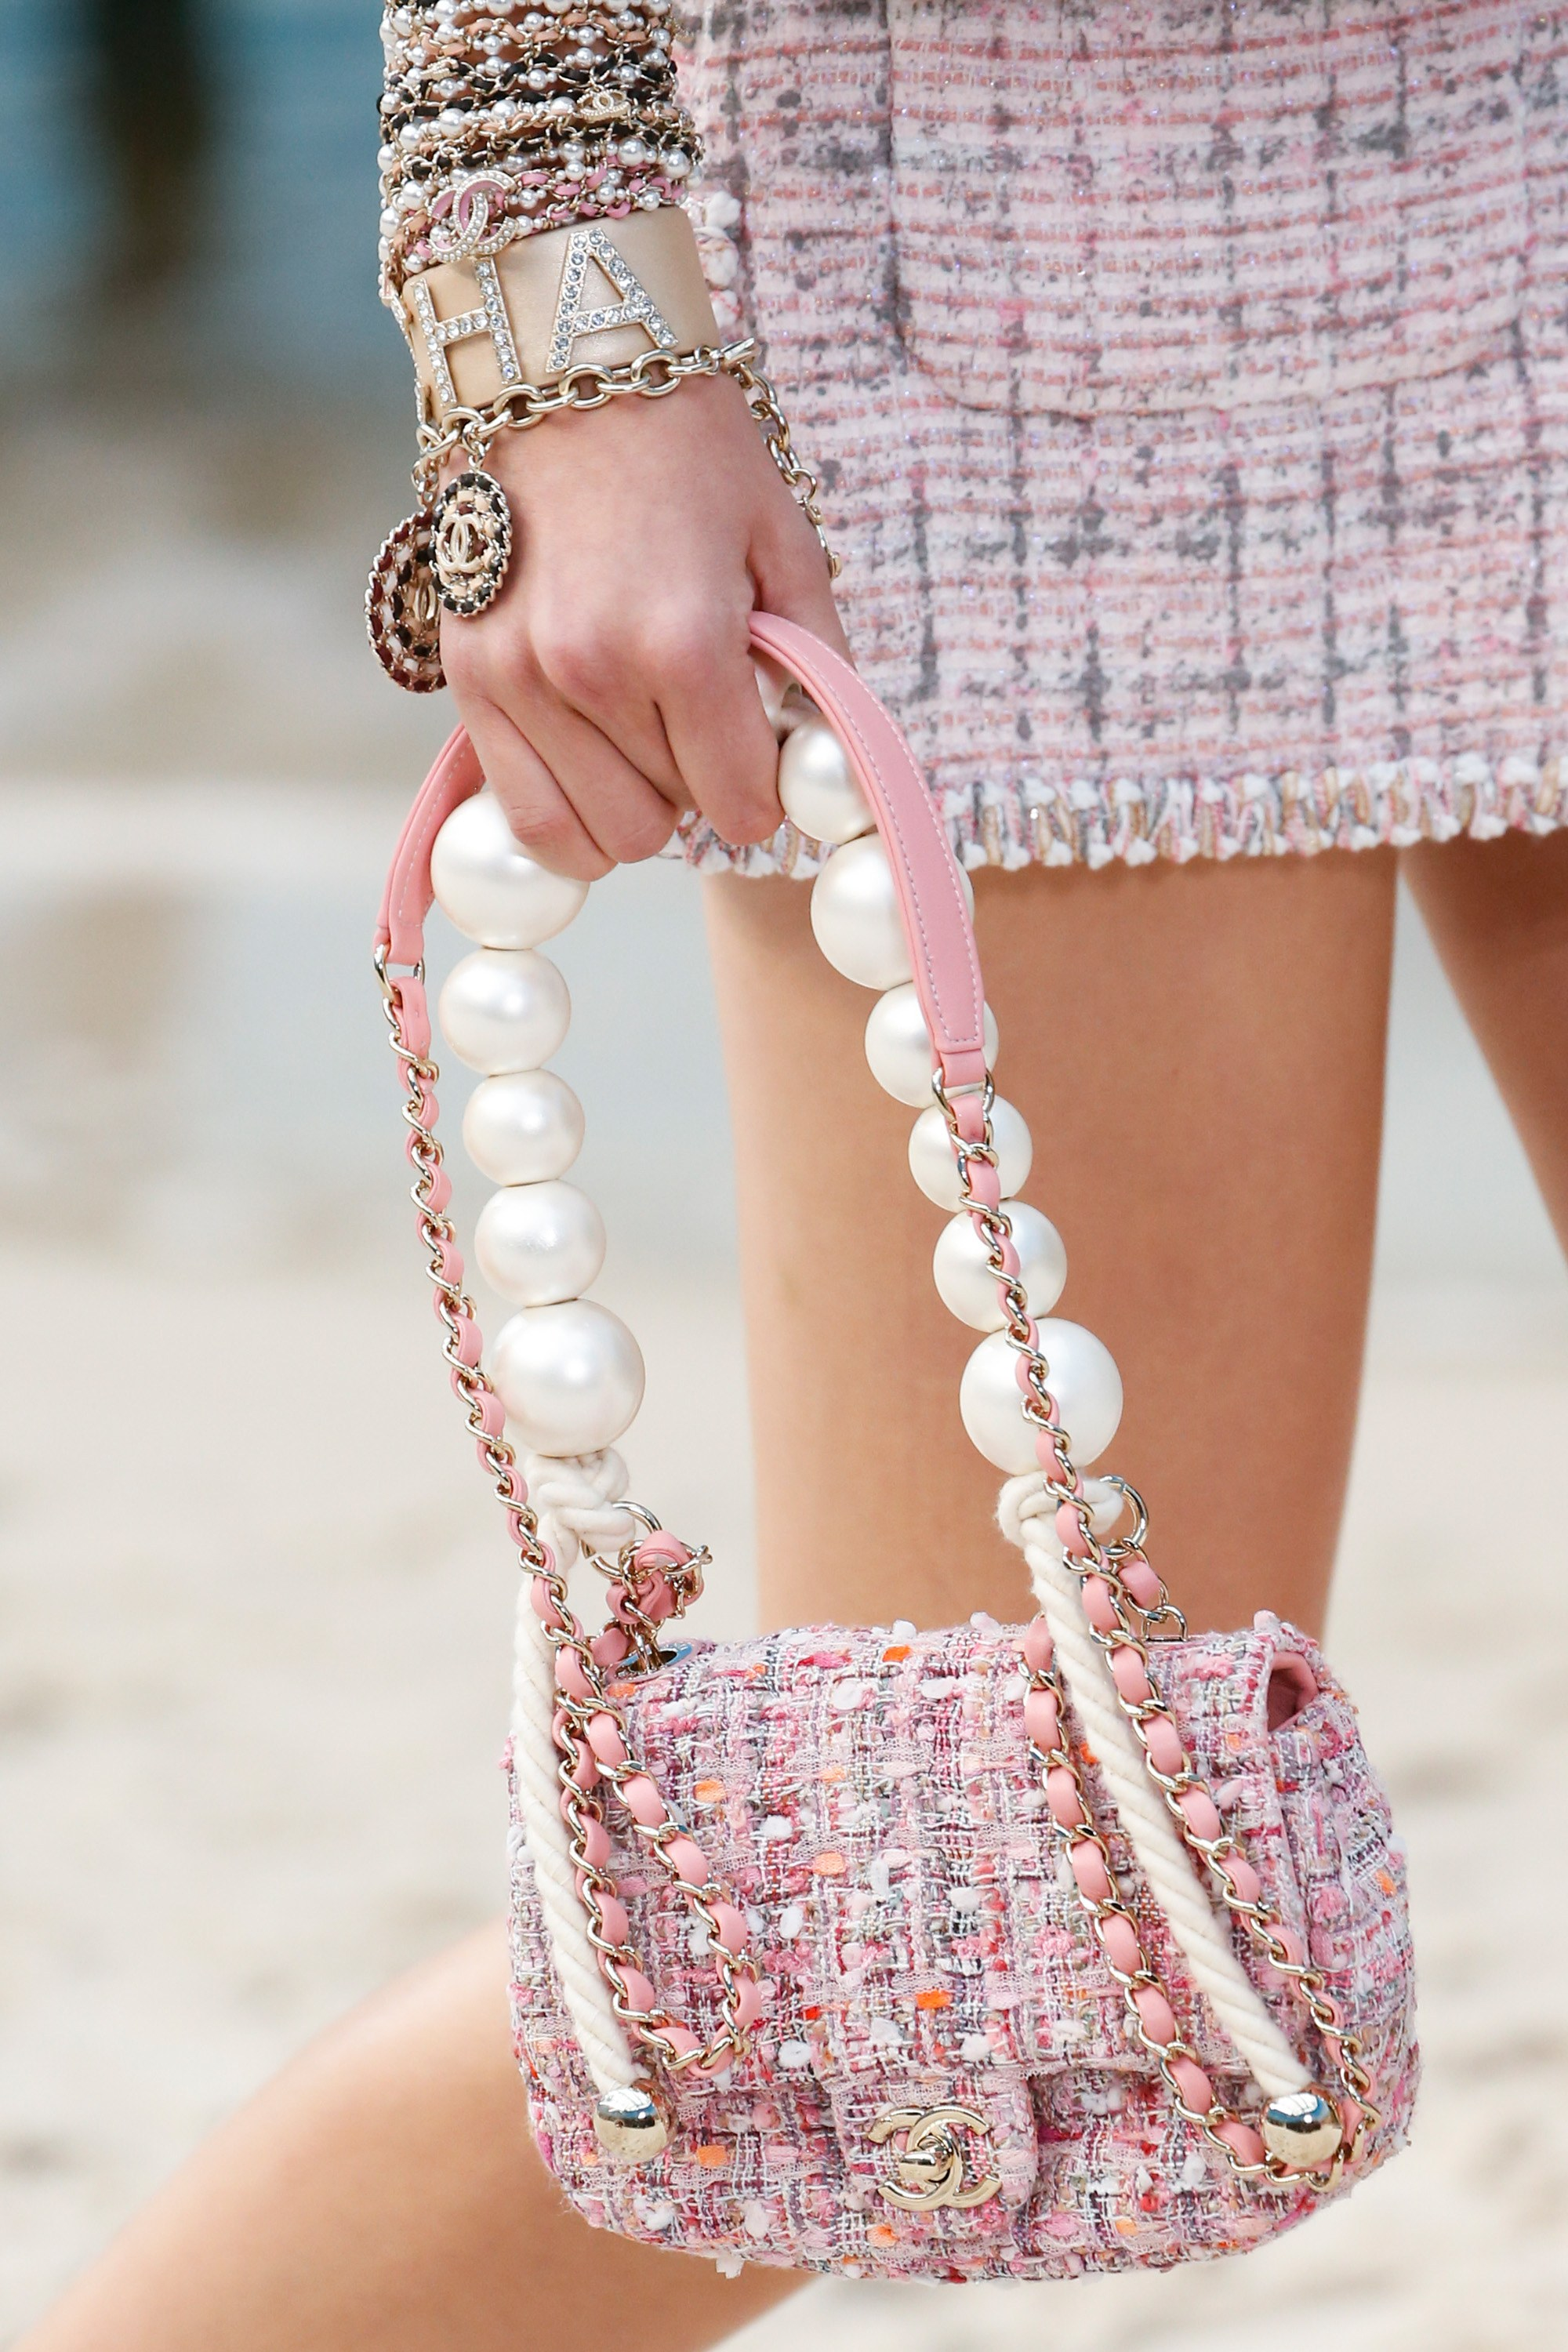 ee347b620af8 Chanel Spring Summer 2019 Runway Bag Collection - Chanel By The Sea ...